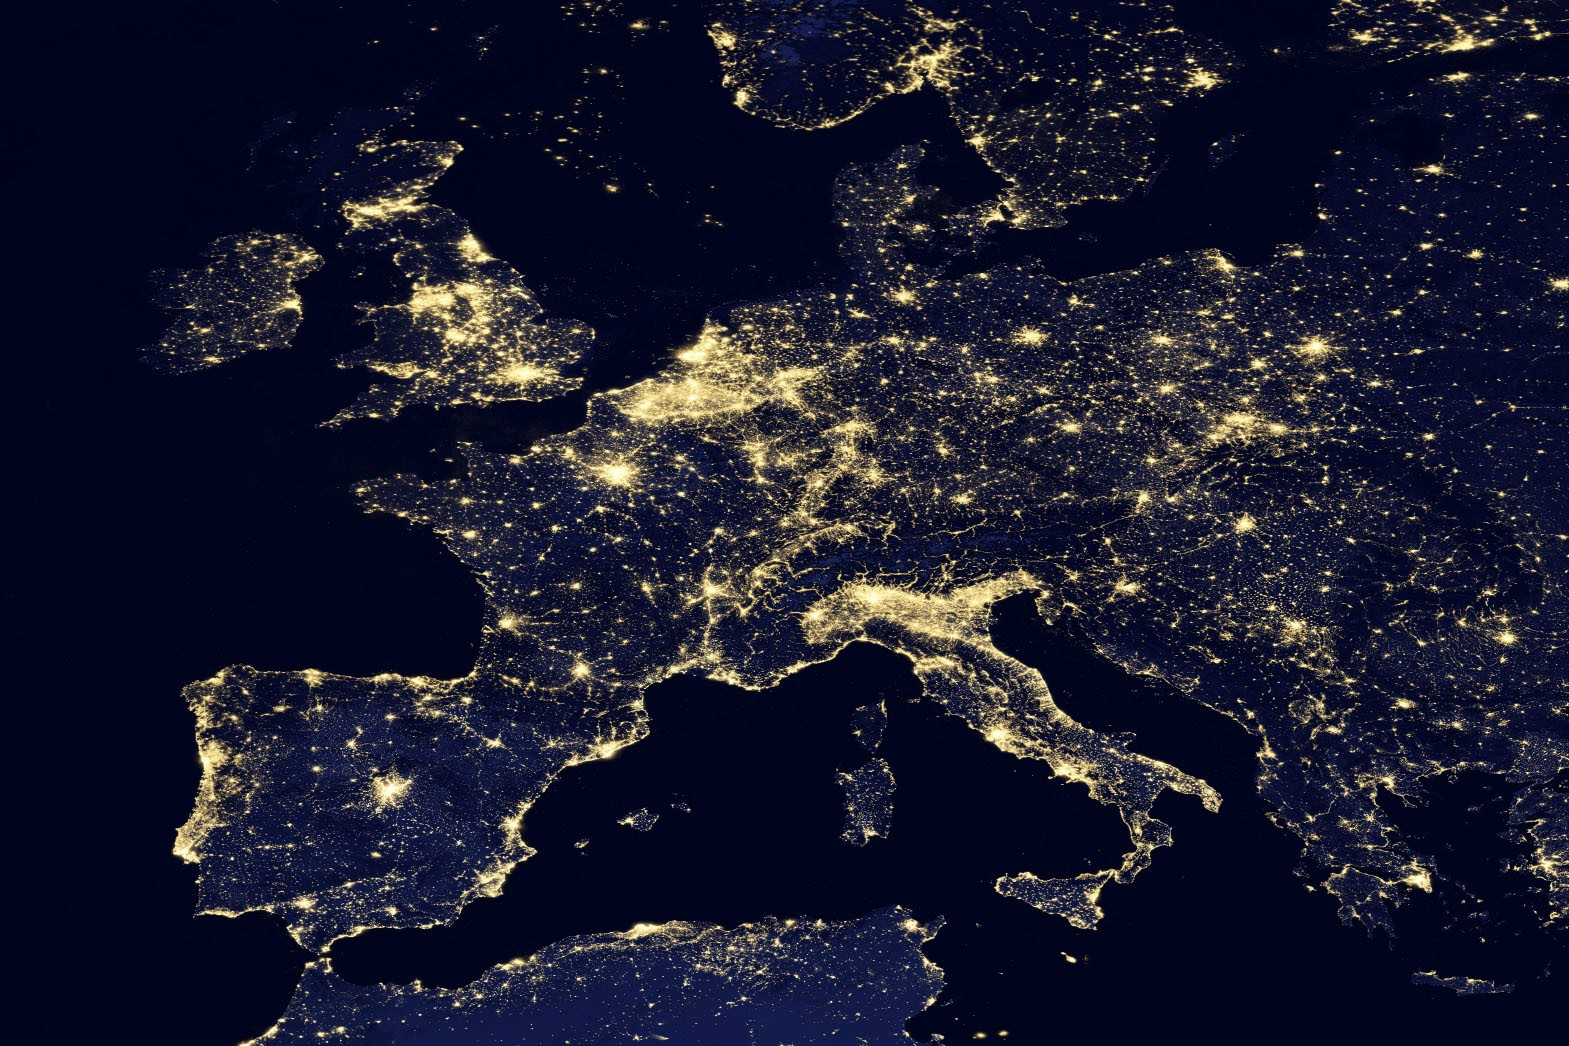 europe-at-night-from-space-nasa-zombie-population-map-europe